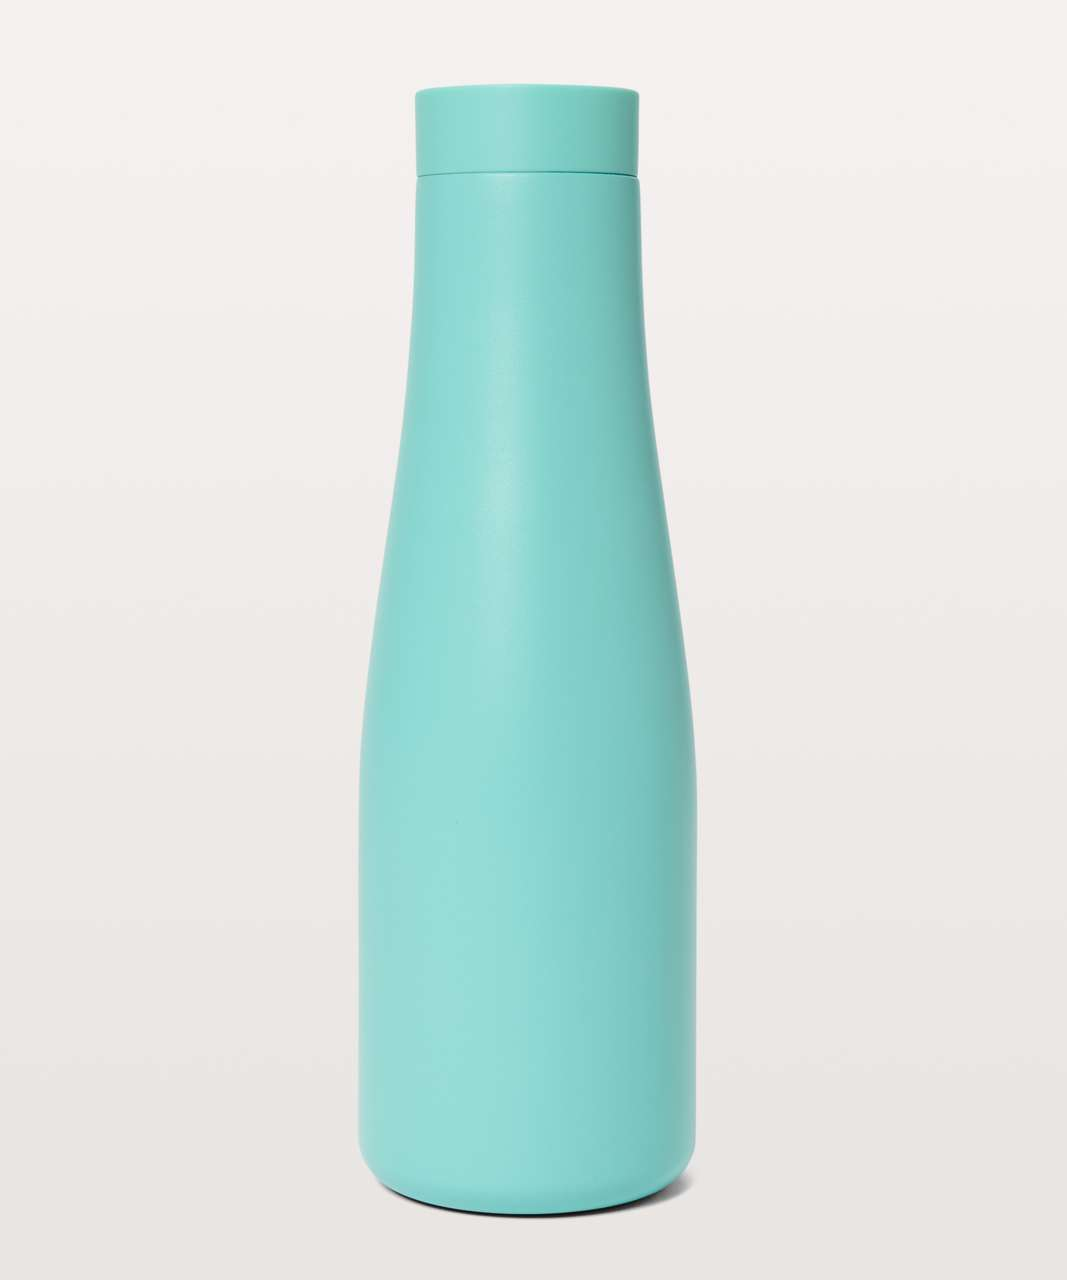 Lululemon Refresh Hot/Cold Bottle - Turquoise